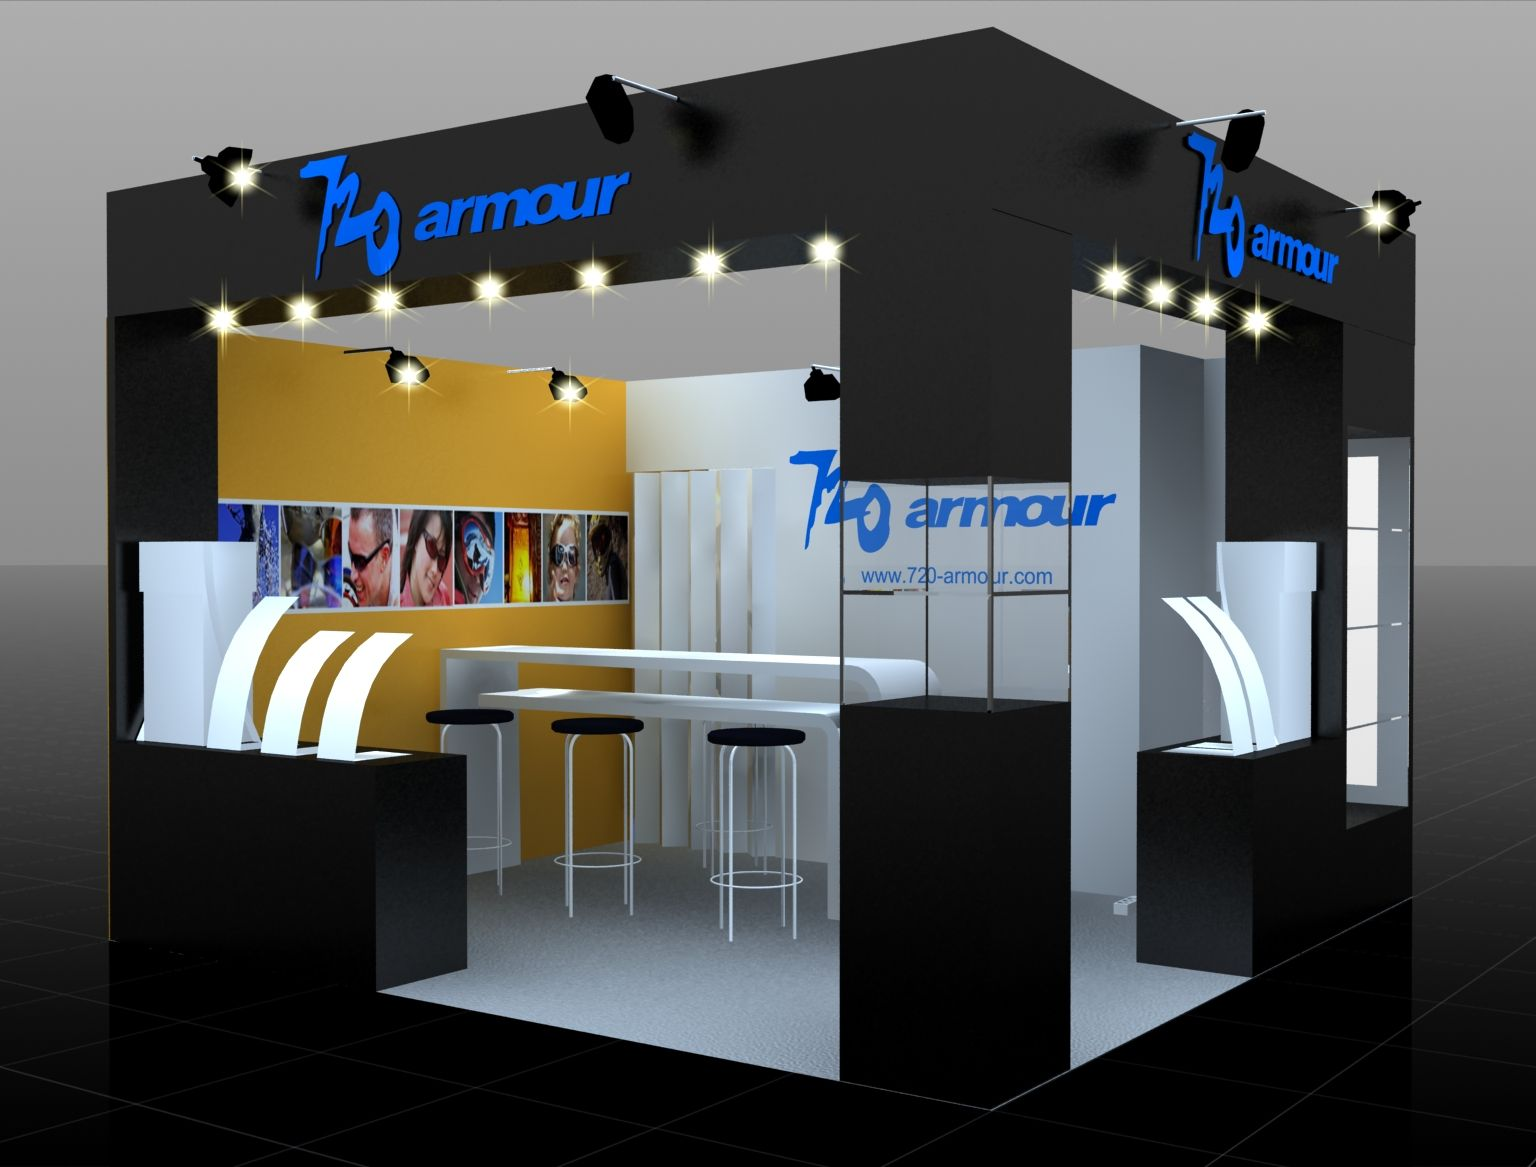 Trade Show Booth Layout Design Trade Show Booth Image Search Results Inspiring Trade Show